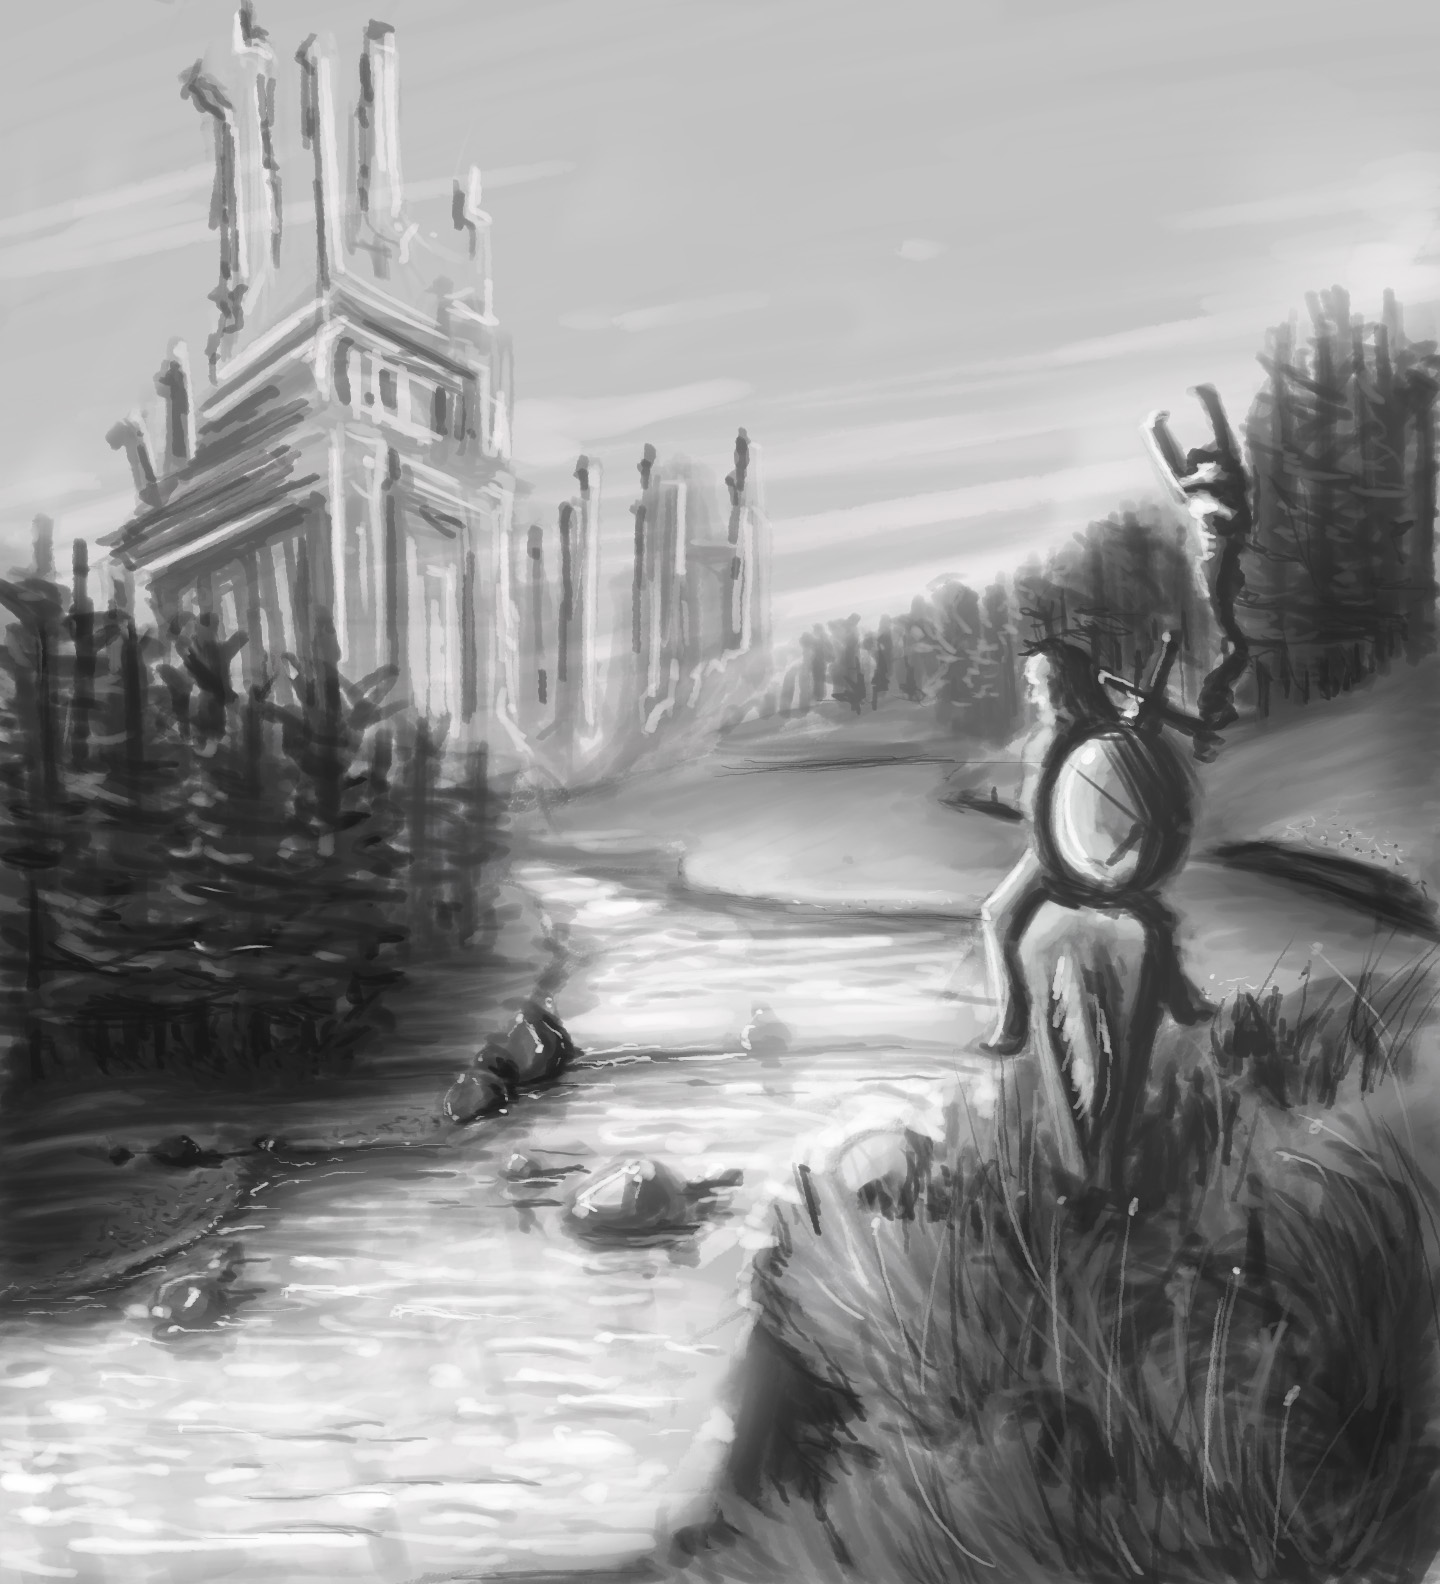 A Hero's Journey: Just across the river